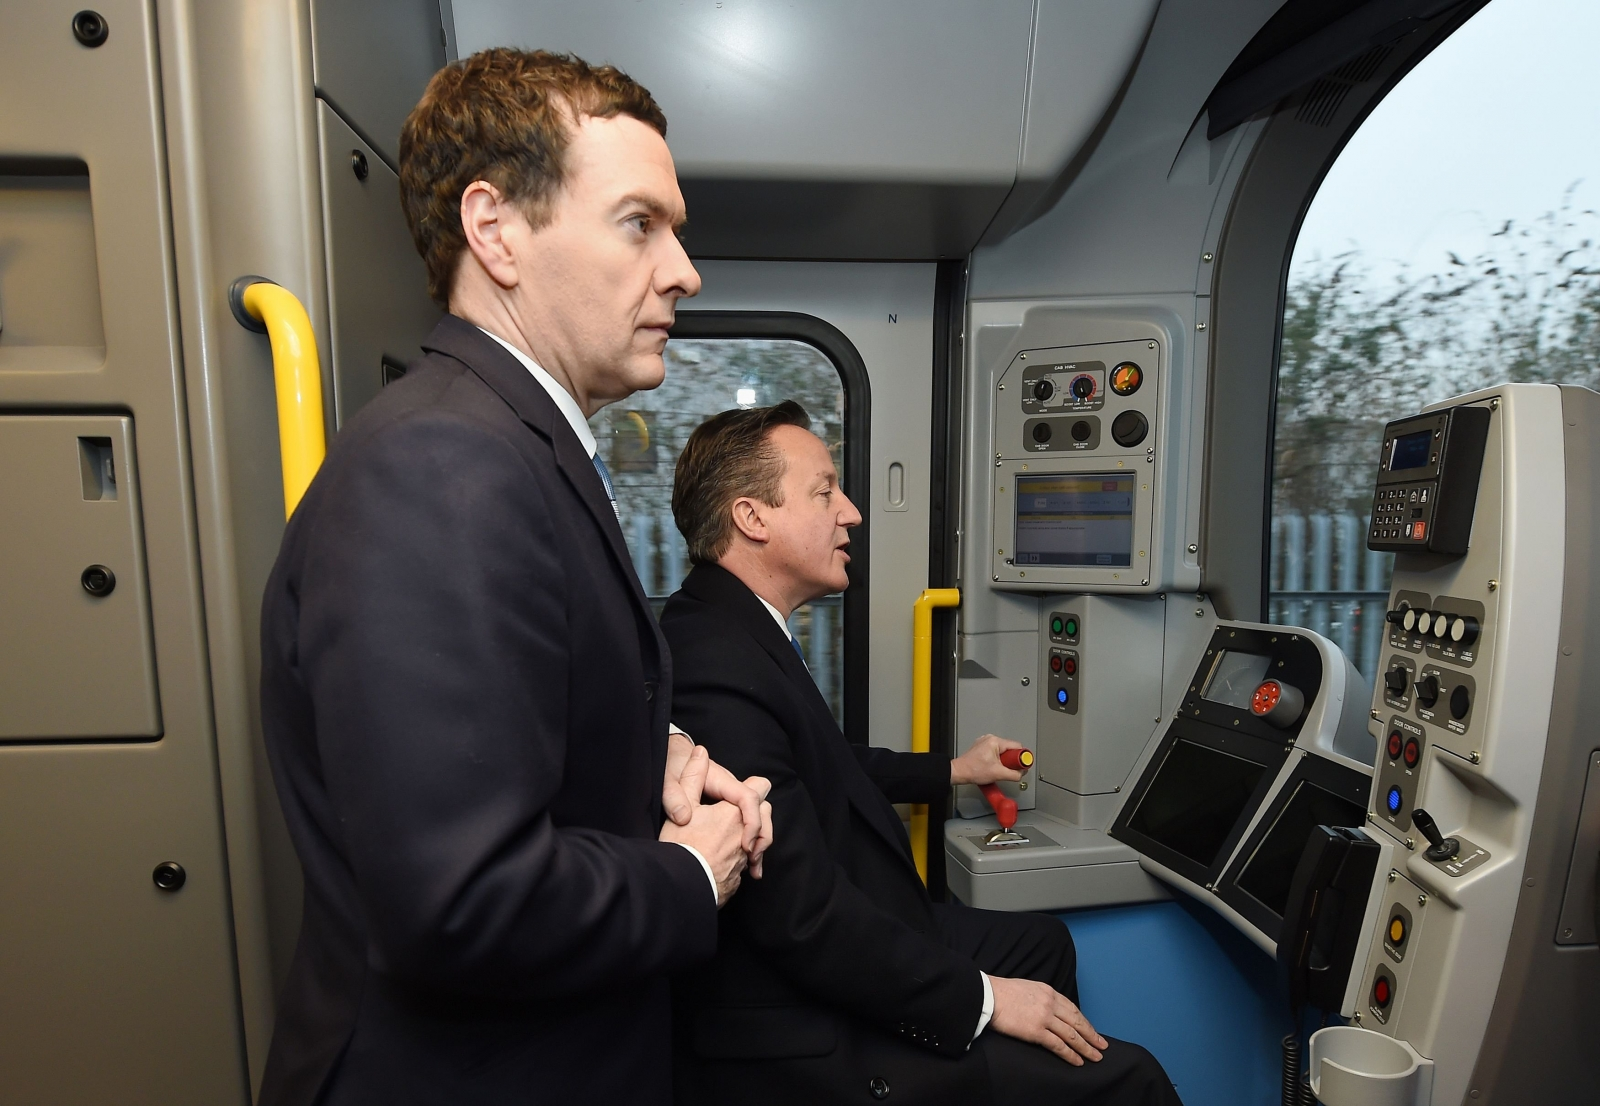 General election 2015: David Cameron drives train to show ...